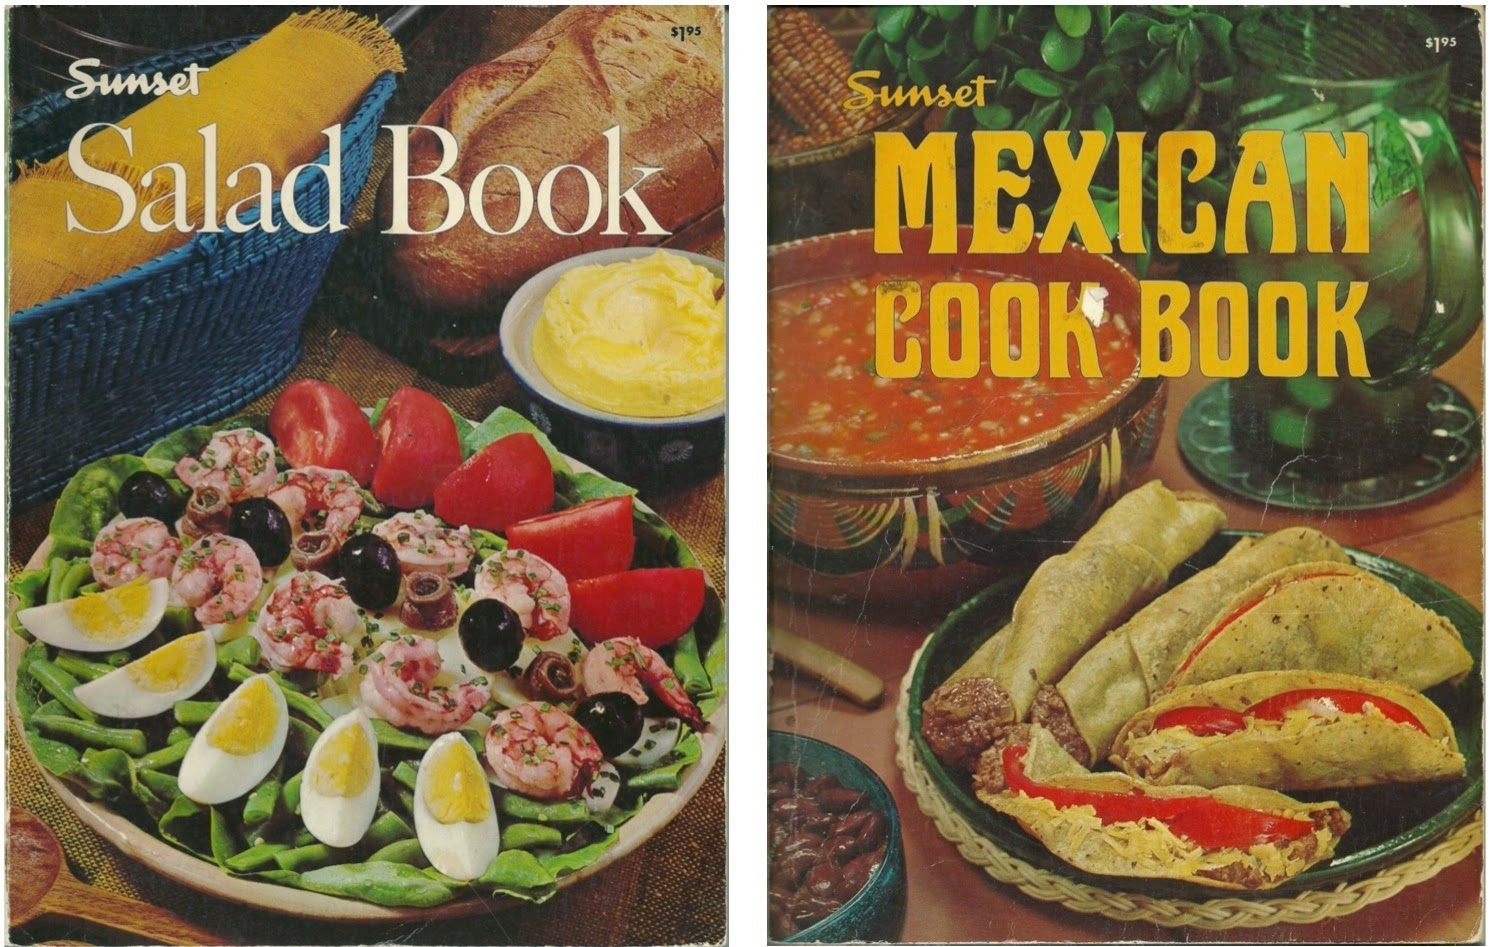 Maes food blog california cooking from sunset cookbooks i know some food snobs dont take sunset cookbooks seriously im not a food snob and over time i have learned a lot from sunset above are two books that forumfinder Gallery